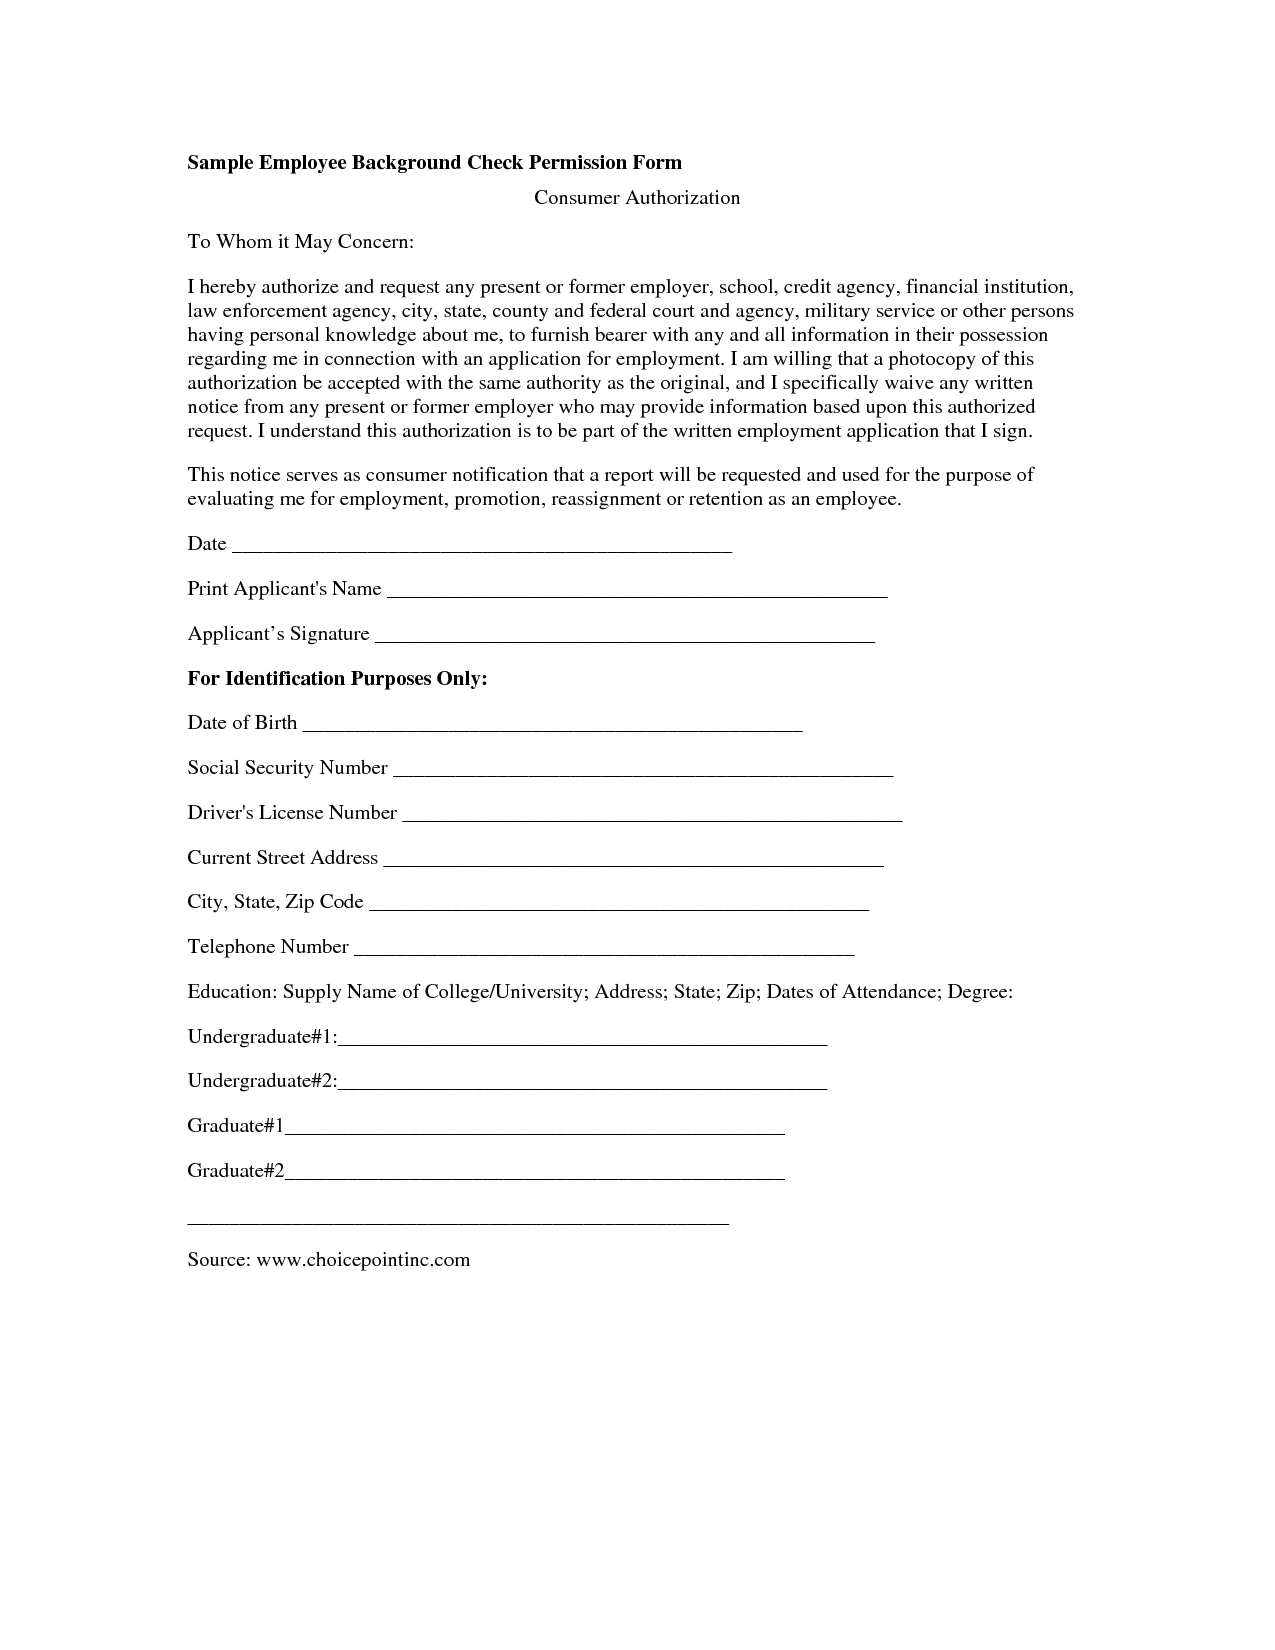 Employment Criminal Background Check Authorization Form